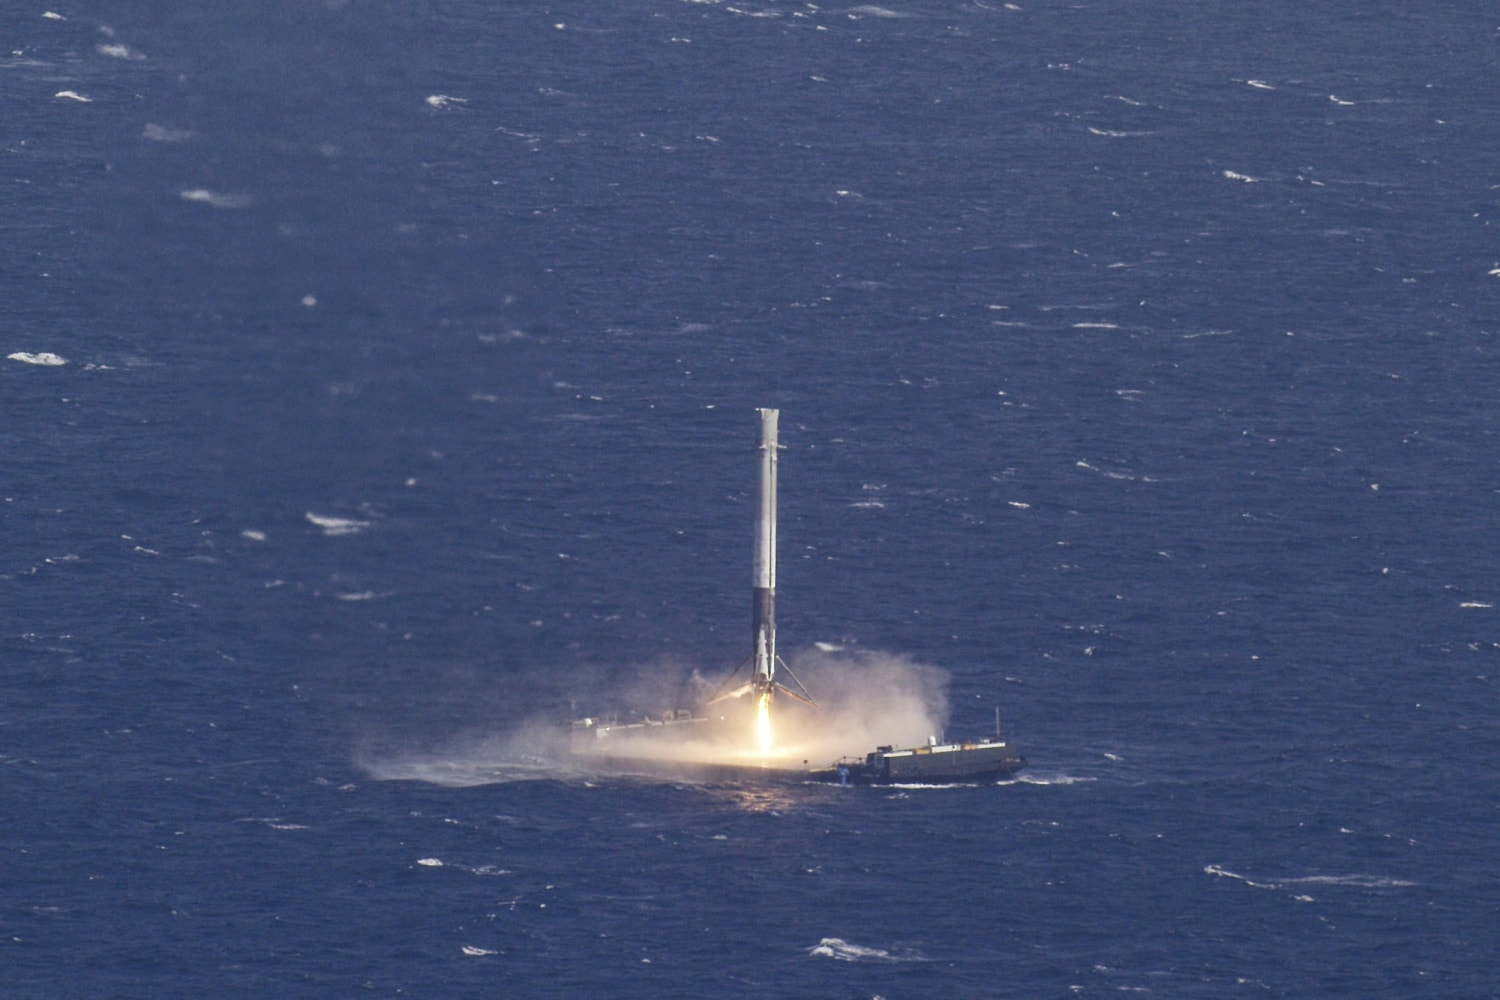 spacex florida - photo #33